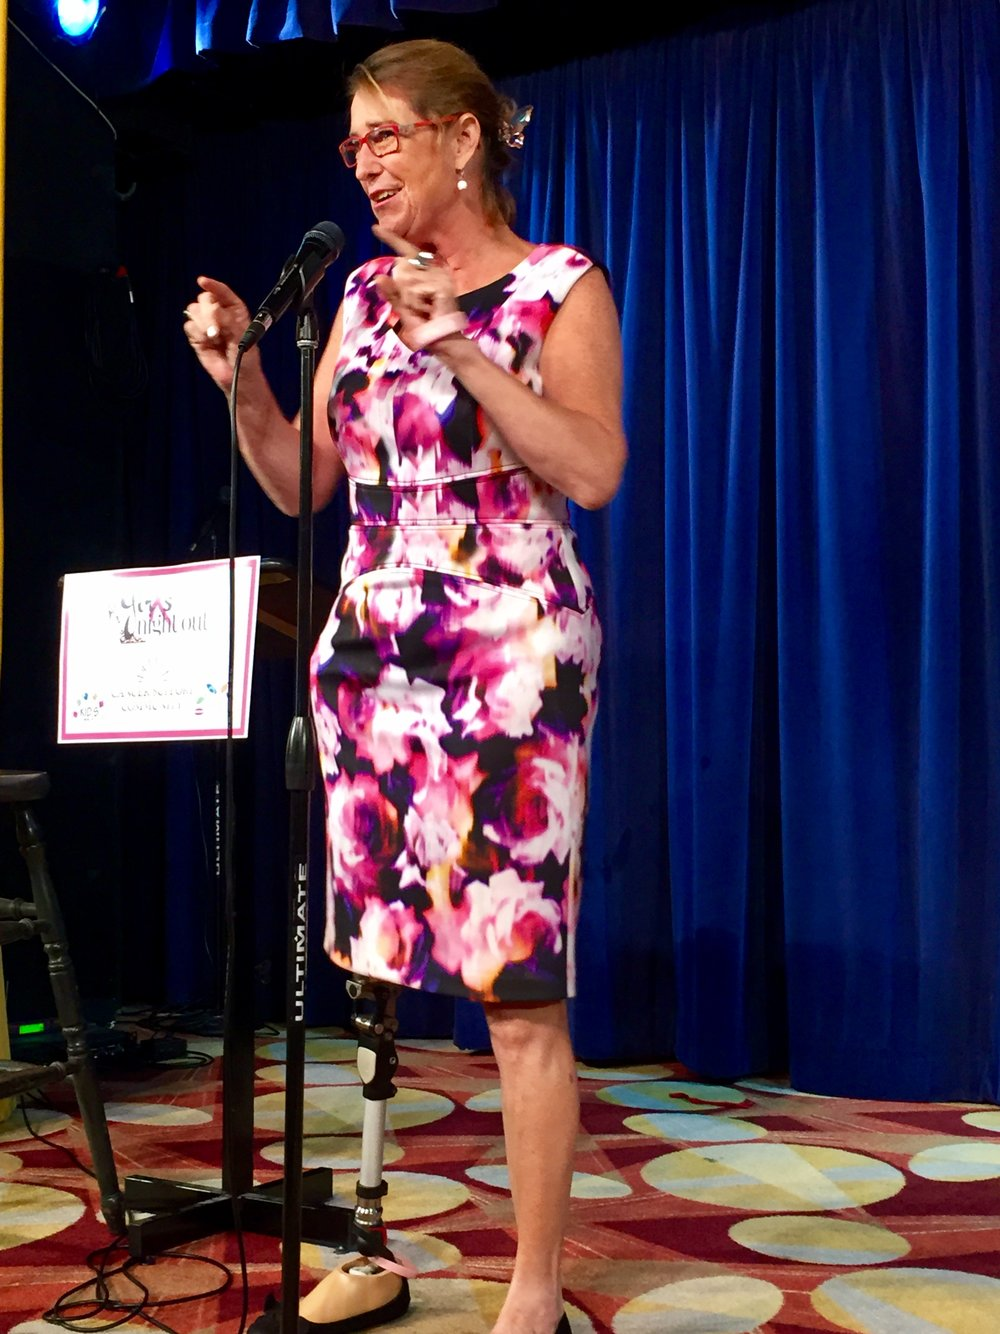 Inspiring at the Cancer Support Community's Girls Night Out for the 3rd time, Adrienne shares her smiles onstage to a sold-out crowd on 10/6/16 at the Comedy & Magic Club in Hermosa Beach, CA.